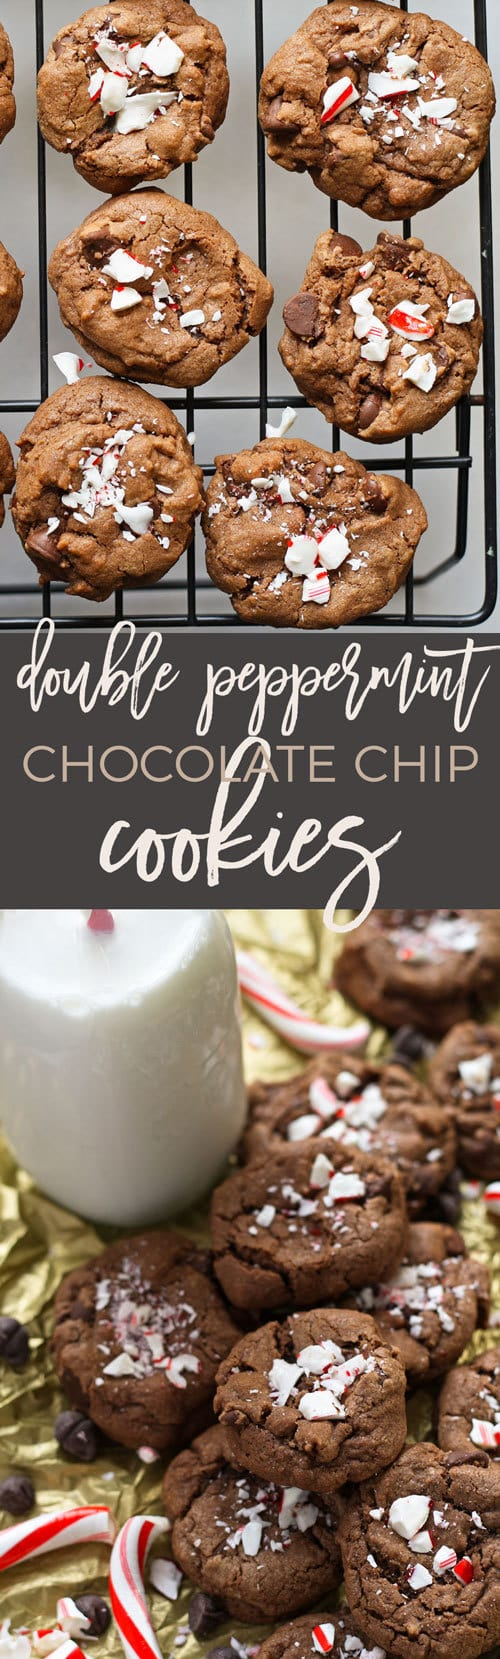 double peppermint chocolate chip cookies long pin